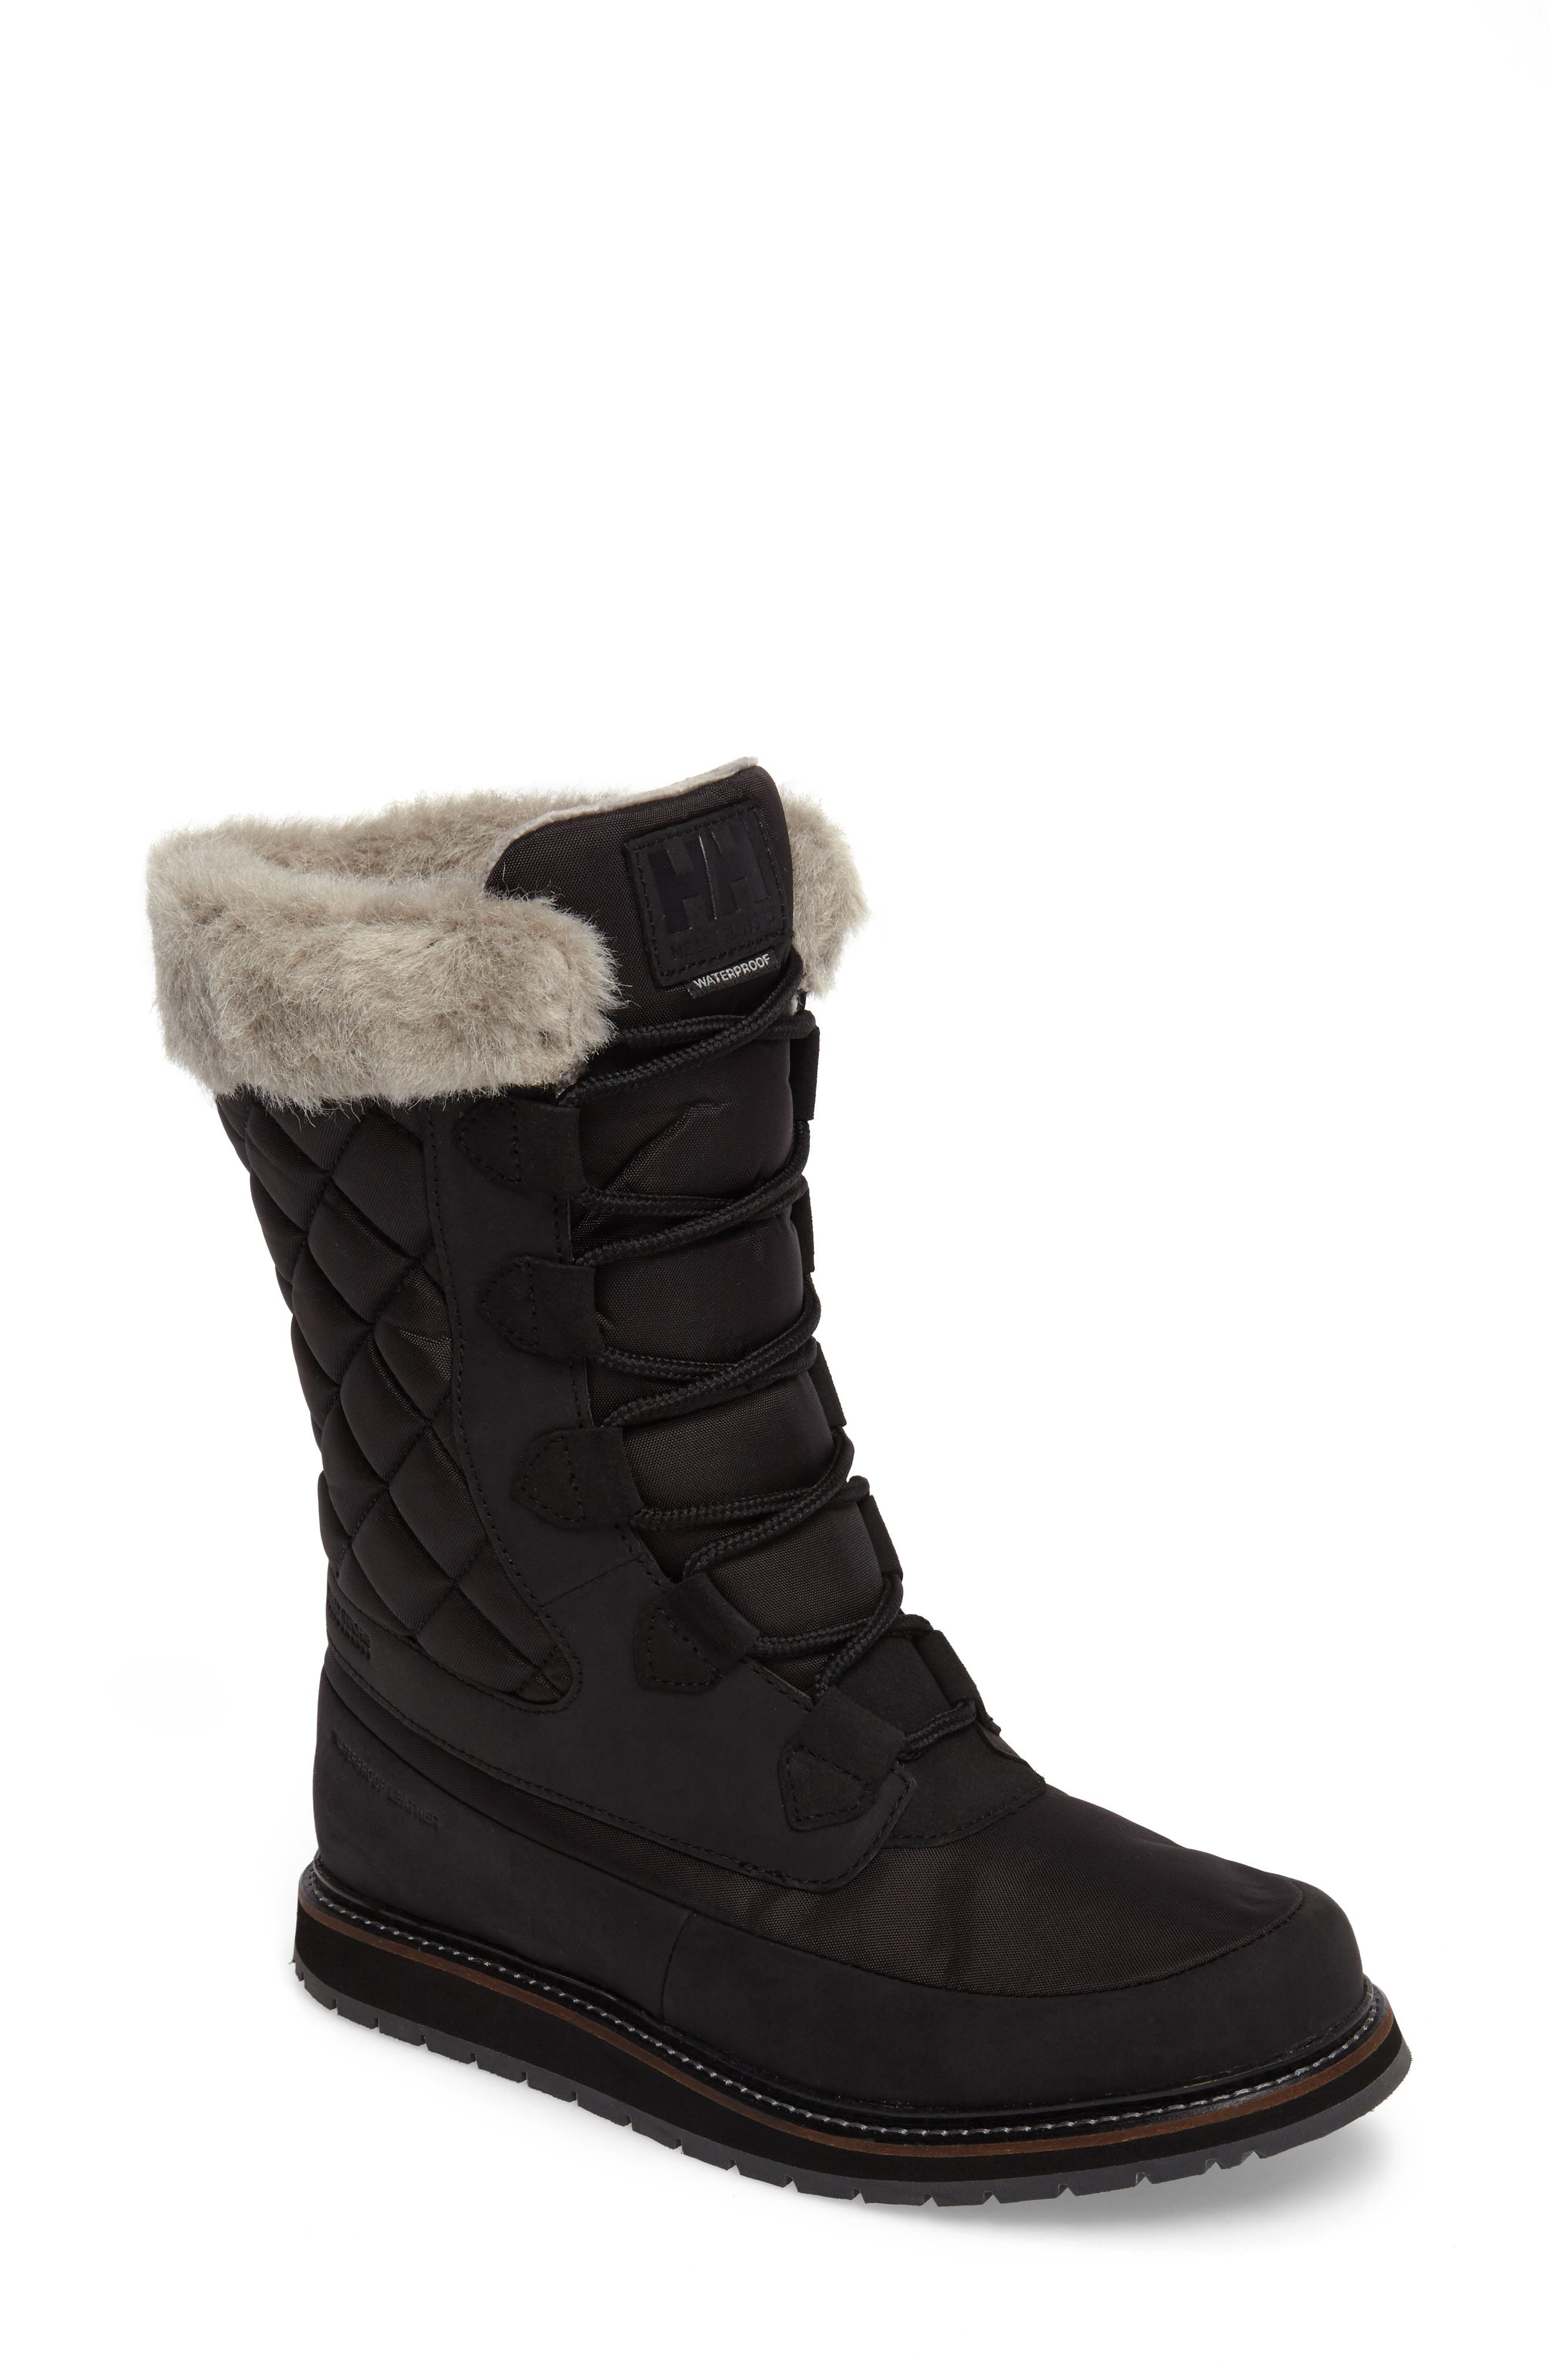 Arosa Waterproof Boot with Faux Fur Trim, Main, color, 001